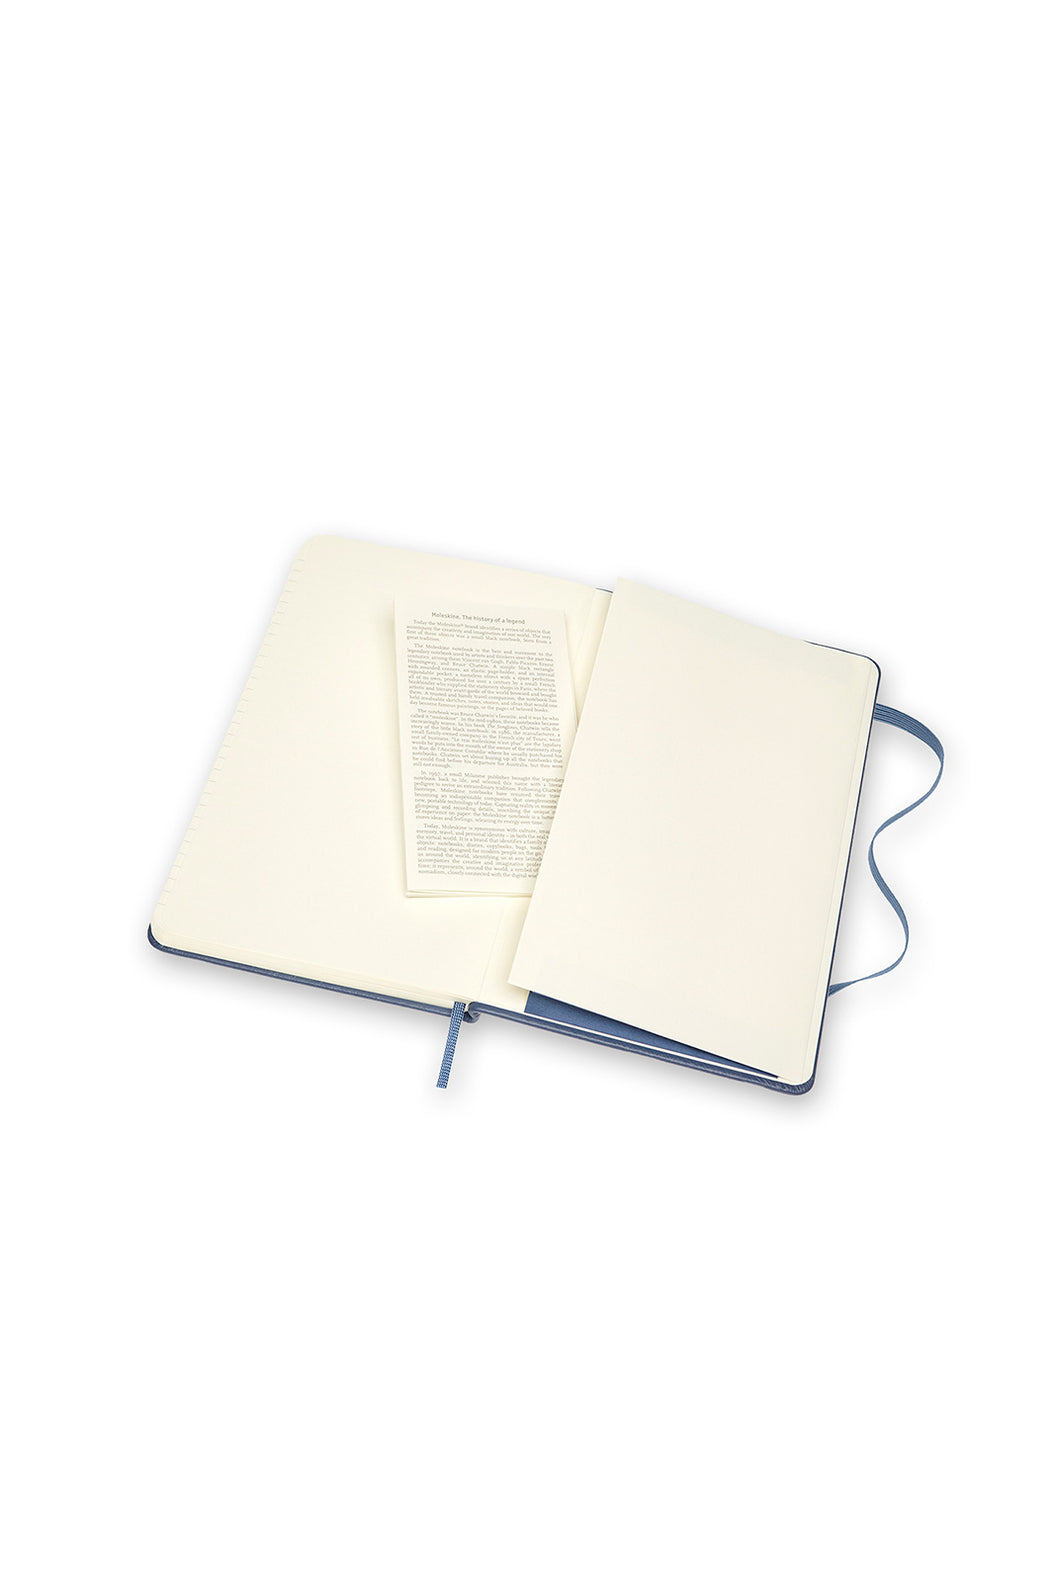 Moleskine - Limited Edition Classic Leather Hard Cover Notebook - Ruled - Large - Forget Me Not Blue